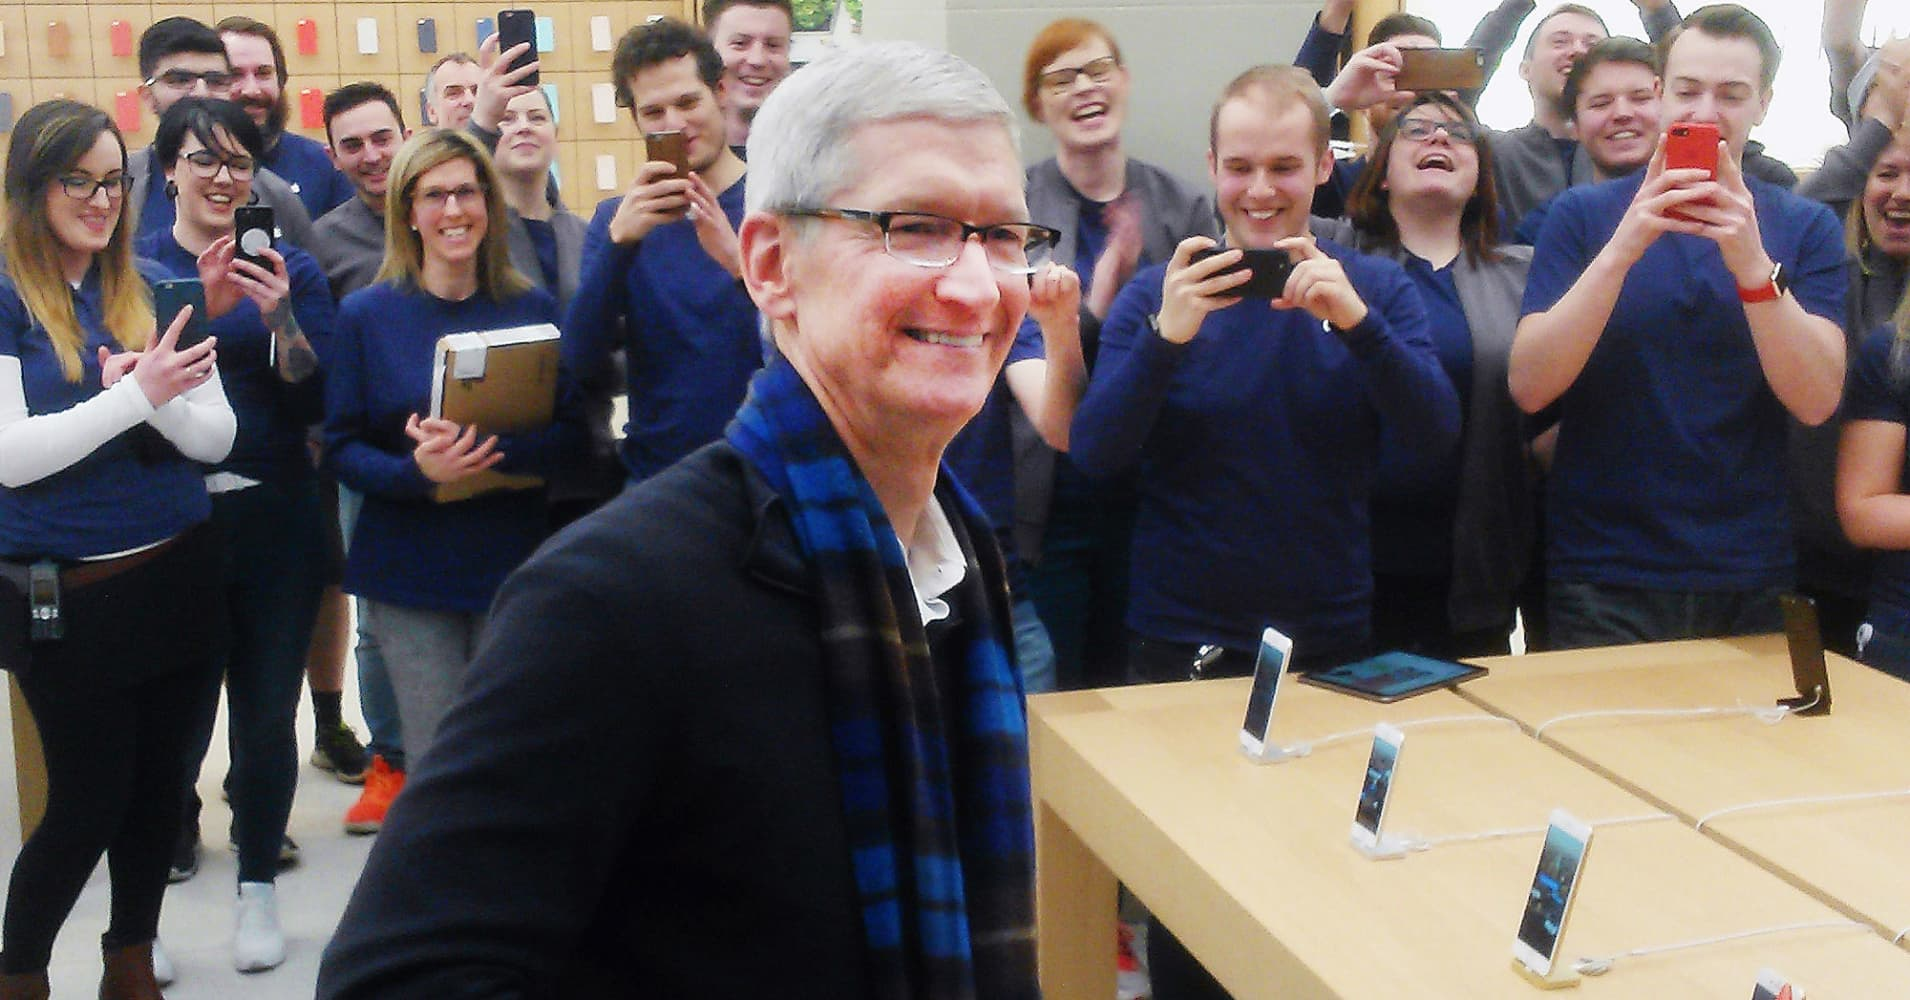 Apple gets one of its most bullish forecasts yet after Bank of America predicts surge to $1.1 trillion